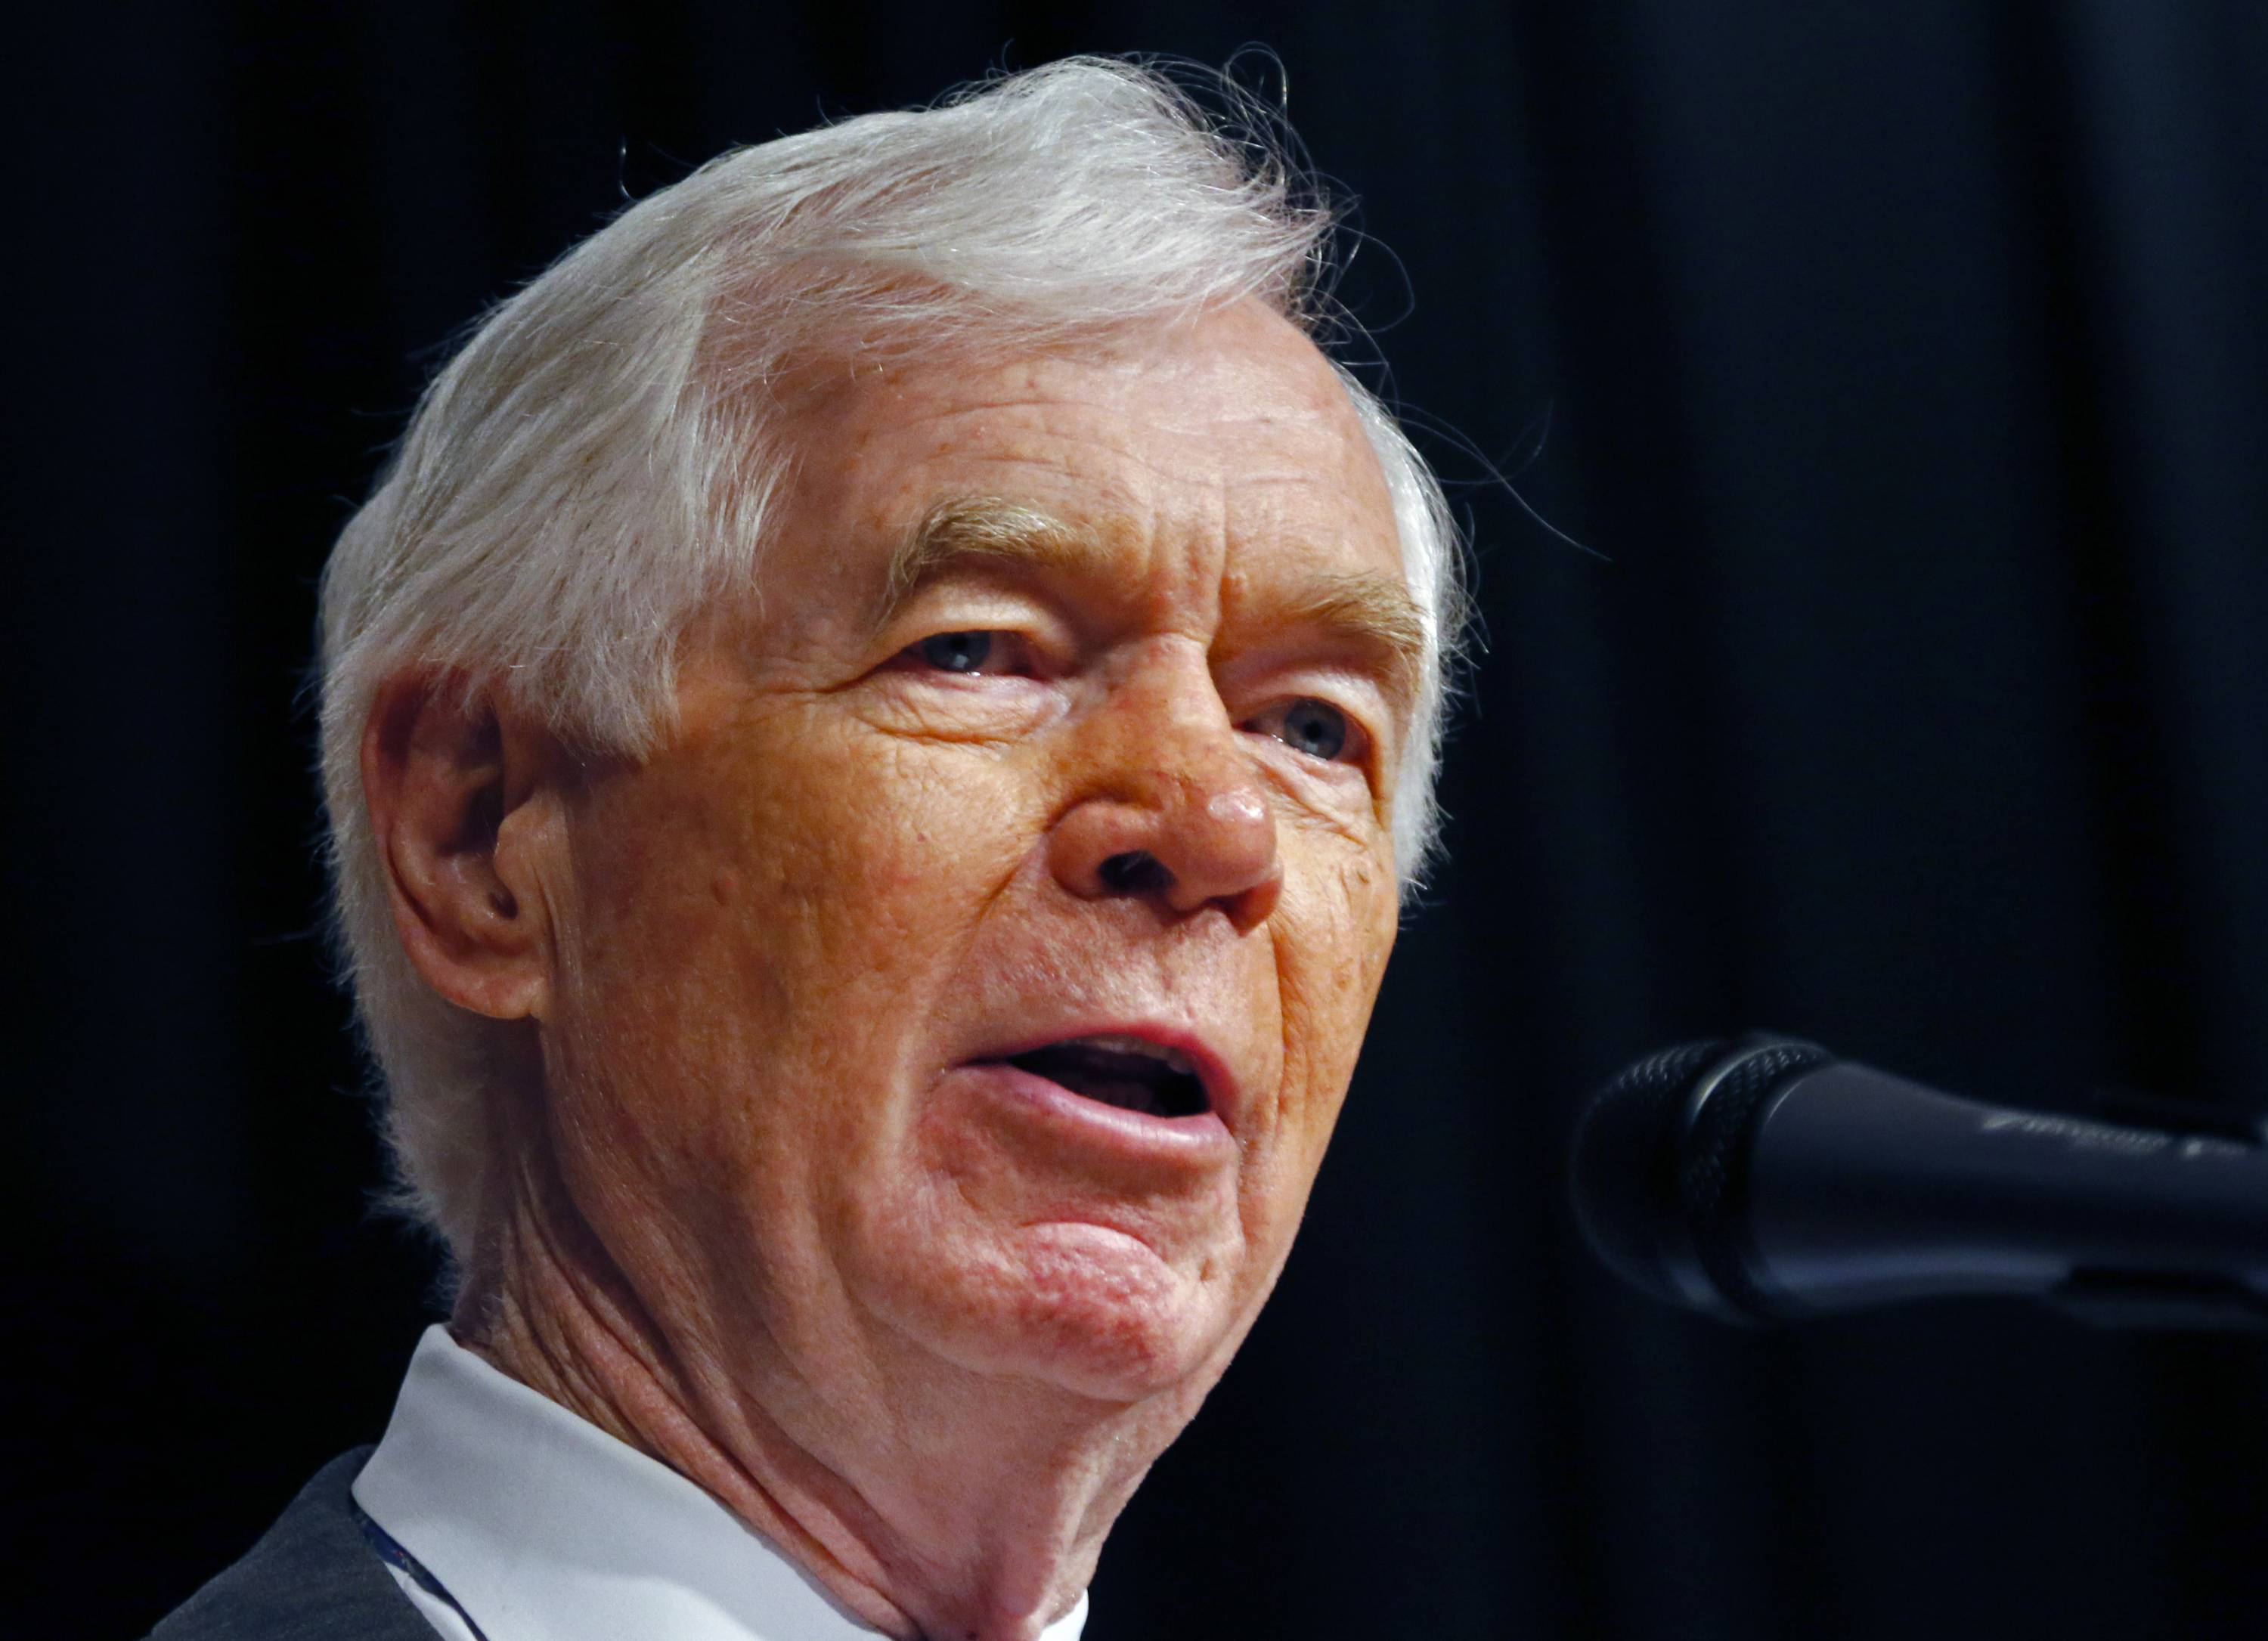 Mississippi Republican Sen. Thad Cochran speaks Monday at a re-election rally on his behalf at the Mississippi War Memorial in Jackson, Miss. Voters head to the polls in seven states Tuesday, and two of the longest serving members of Congress face challenges that could end their careers. In Mississippi, six-term Cochran faces Tea Party challenger Chris McDaniel in a Republican primary runoff. McDaniel is a 41-year-old state lawmaker who led Cochran by less than 1,400 votes but didn't win a majority in the first round of voting.